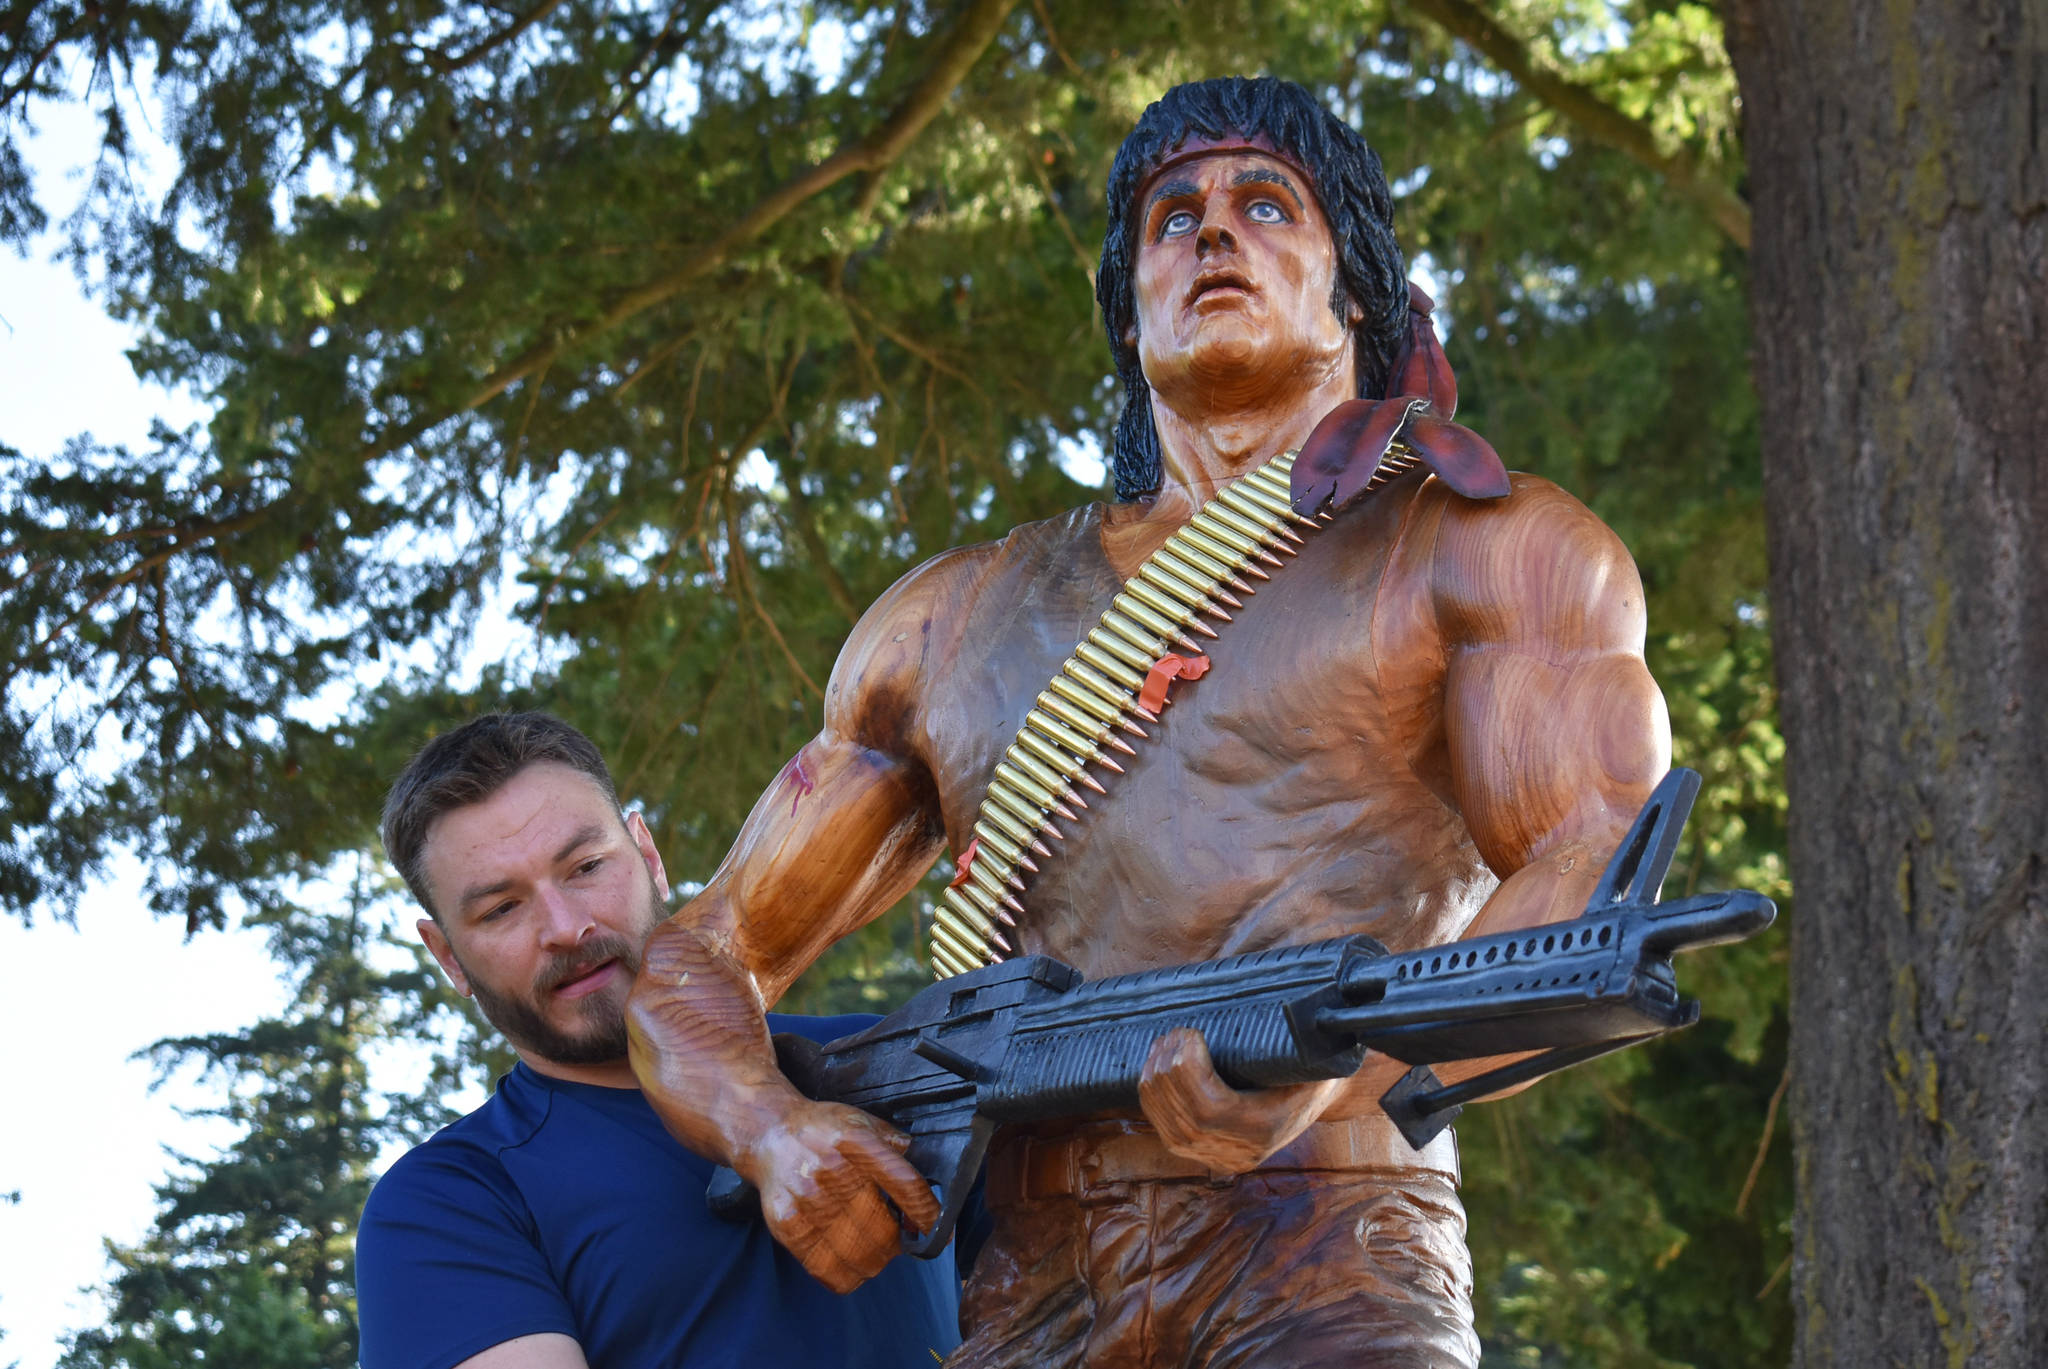 Carver Ryan Villiers puts finishing touches on the lifelike chainsaw carving of John J. Rambo (played by Sylvester Stallone) before it was installed at Hope's Memorial Park Aug. 14, 2020. (Emelie Peacock/Hope Standard)